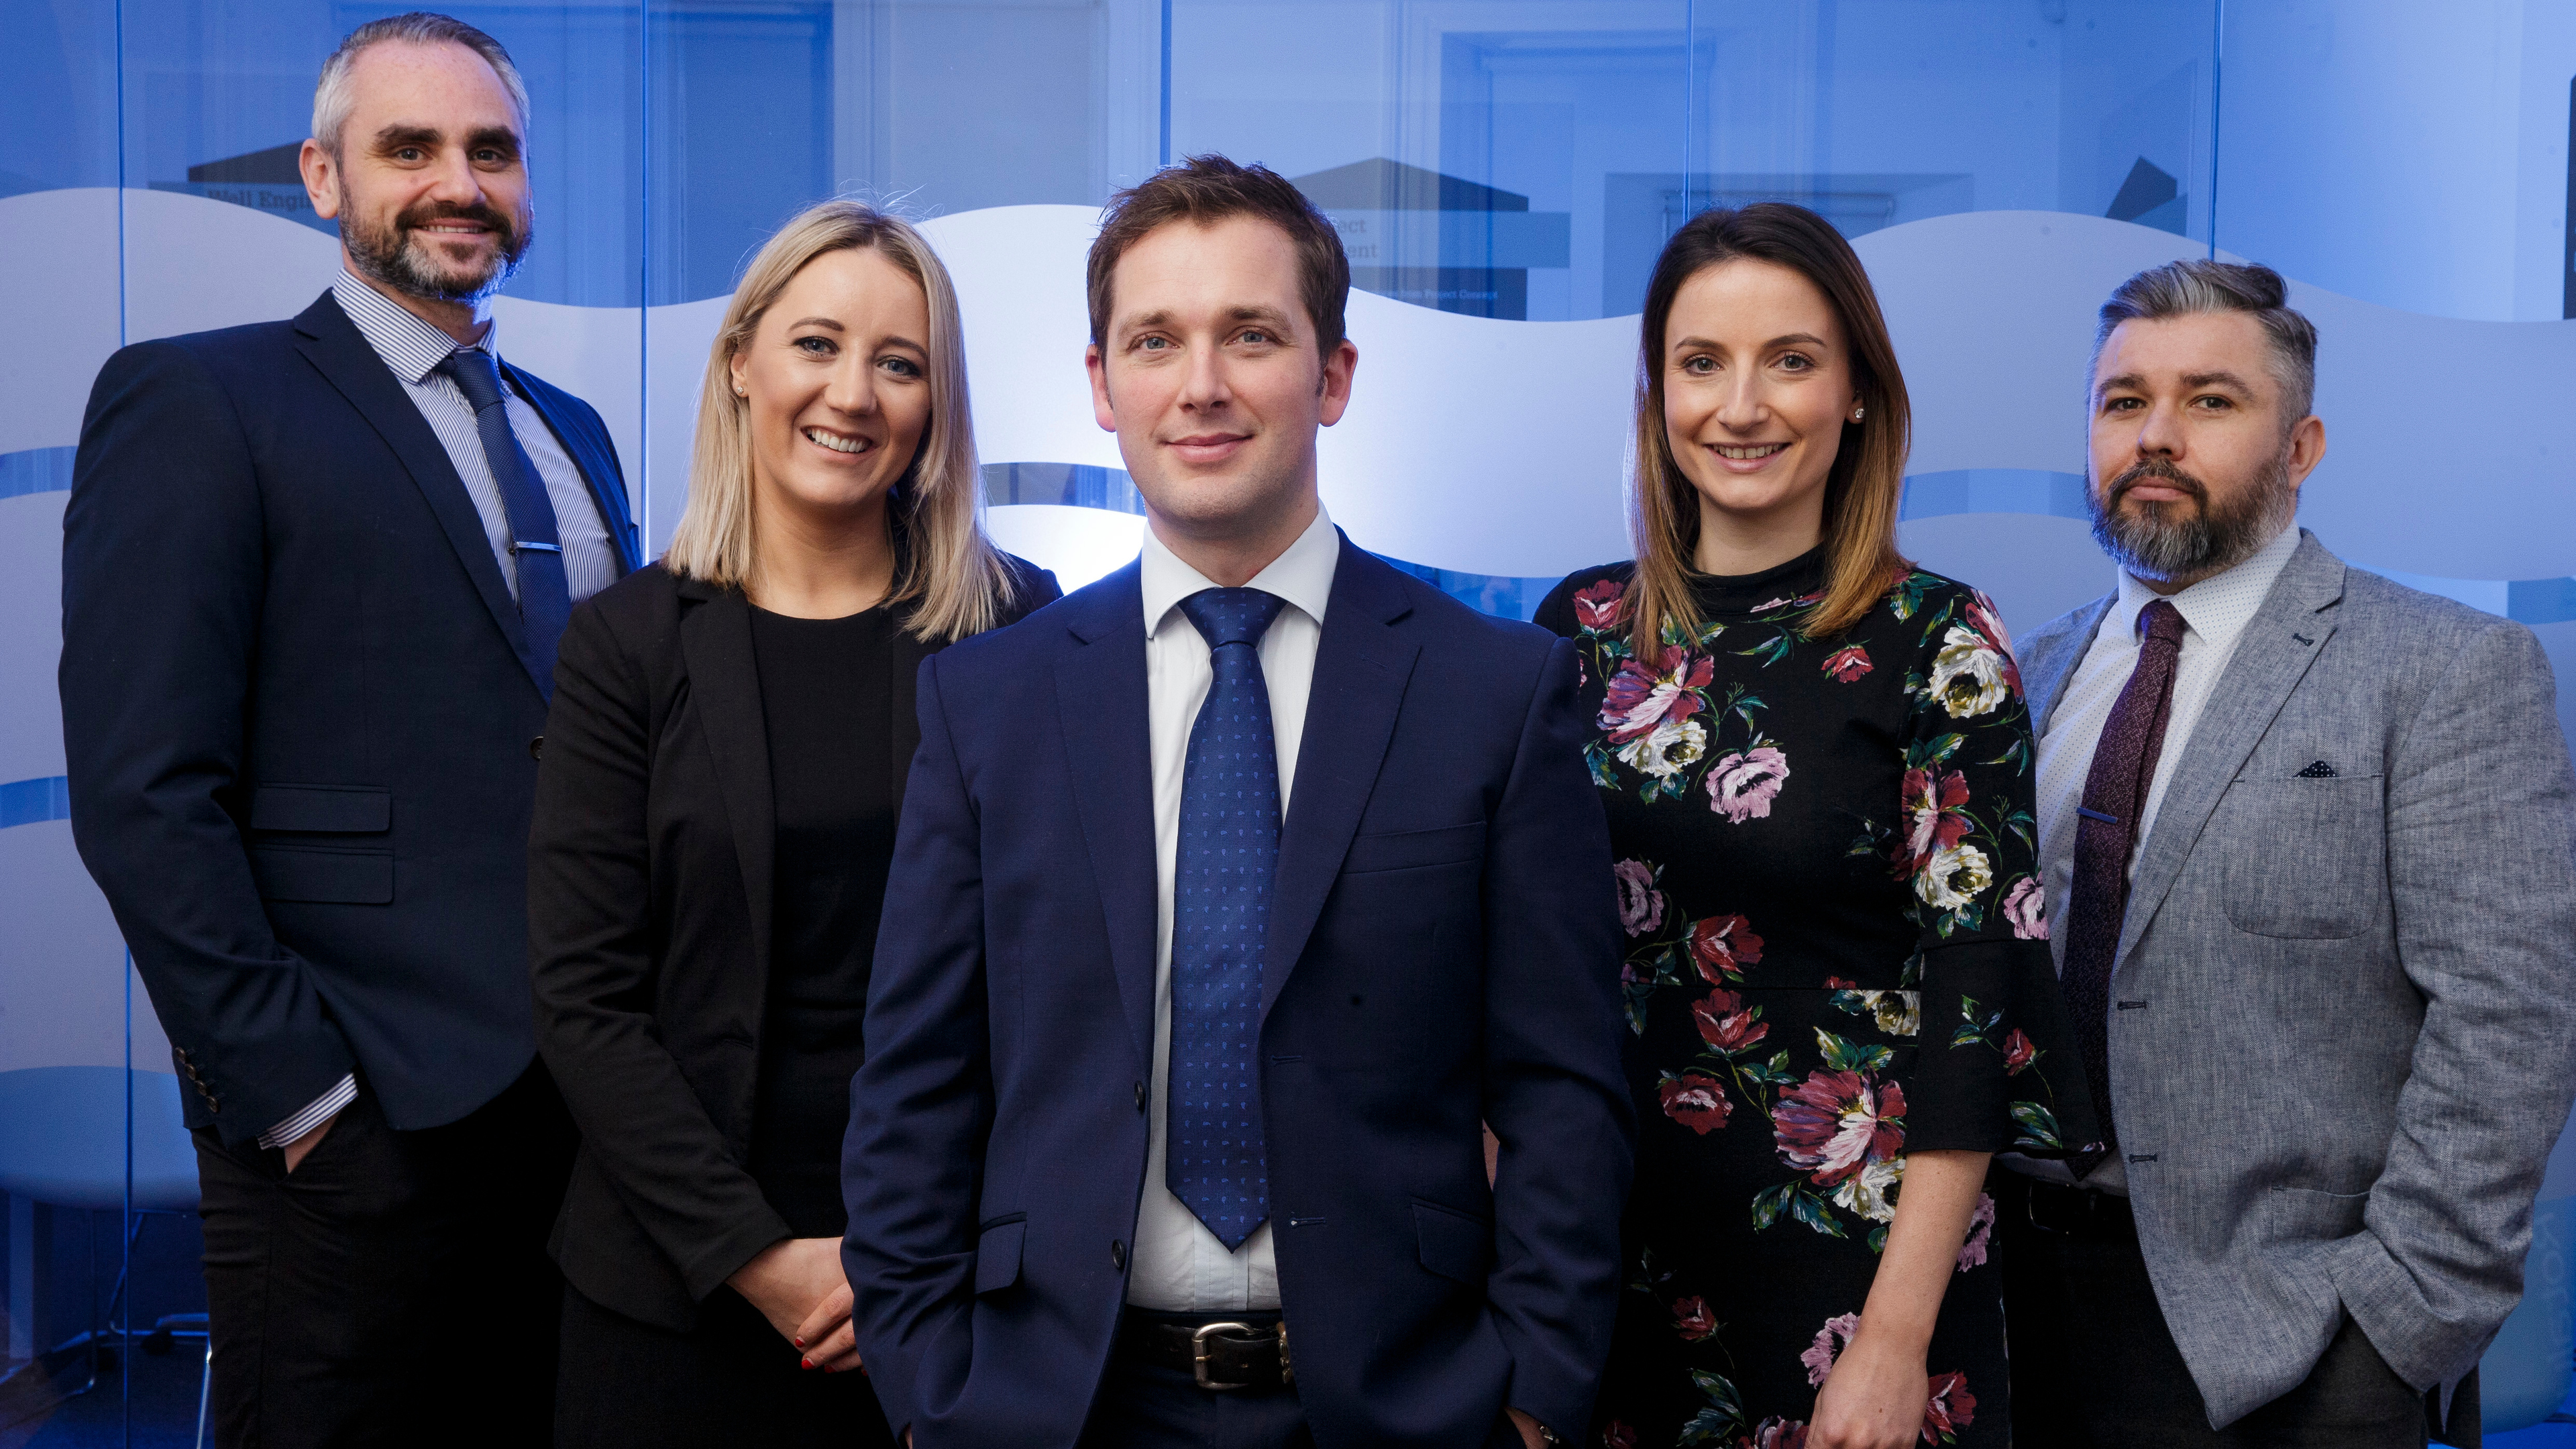 Triton Energy Solutions: John Dickson, Adele Wilson, Scott Shand, Charlotte Thomson and Jamie Leese. (Photo: Newsline Media)